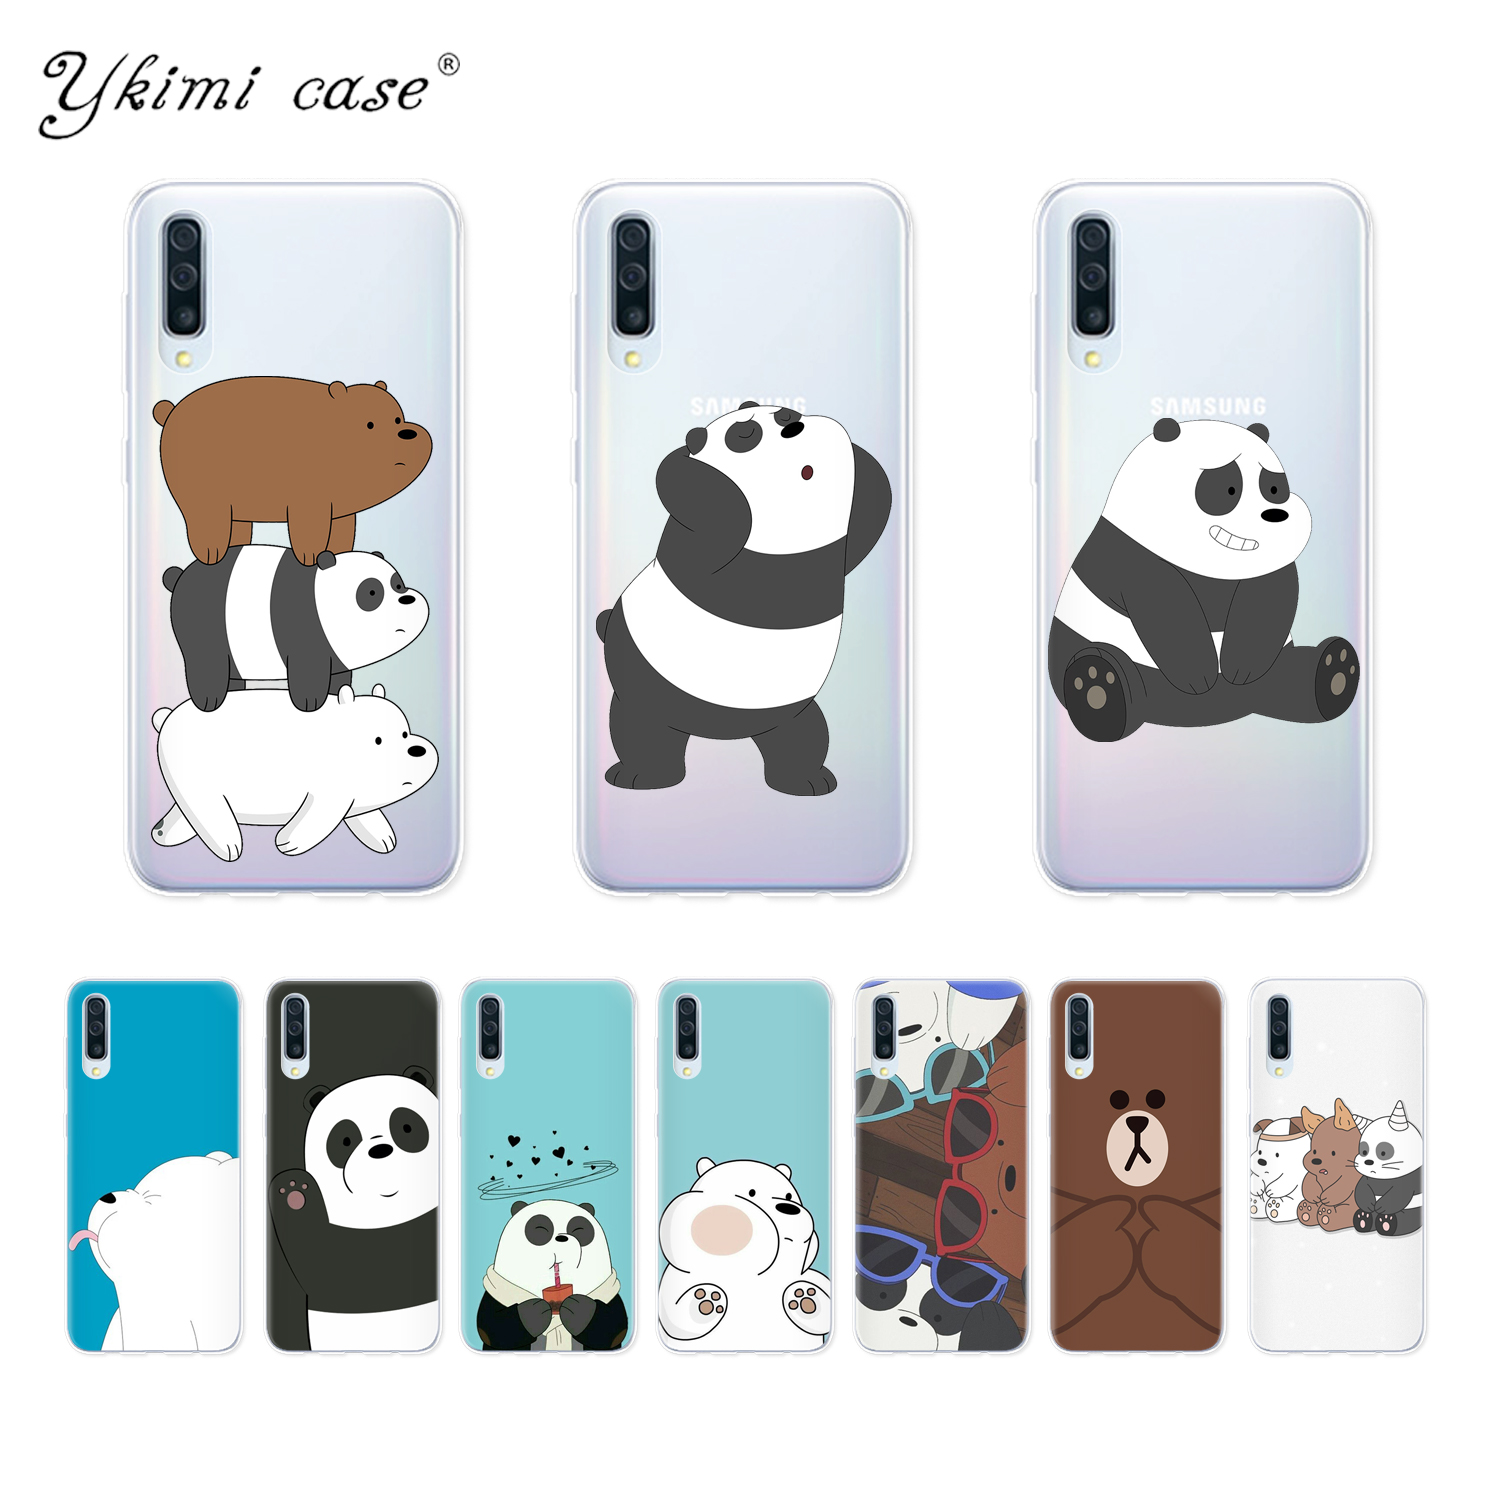 Phone Case For <font><b>Samsung</b></font> Galaxy <font><b>A10</b></font> A20 A30 A40 A50 A70 Case Cute Cartoon We Bare Bears Panda Coque Soft Silicone TPU <font><b>Funda</b></font> image